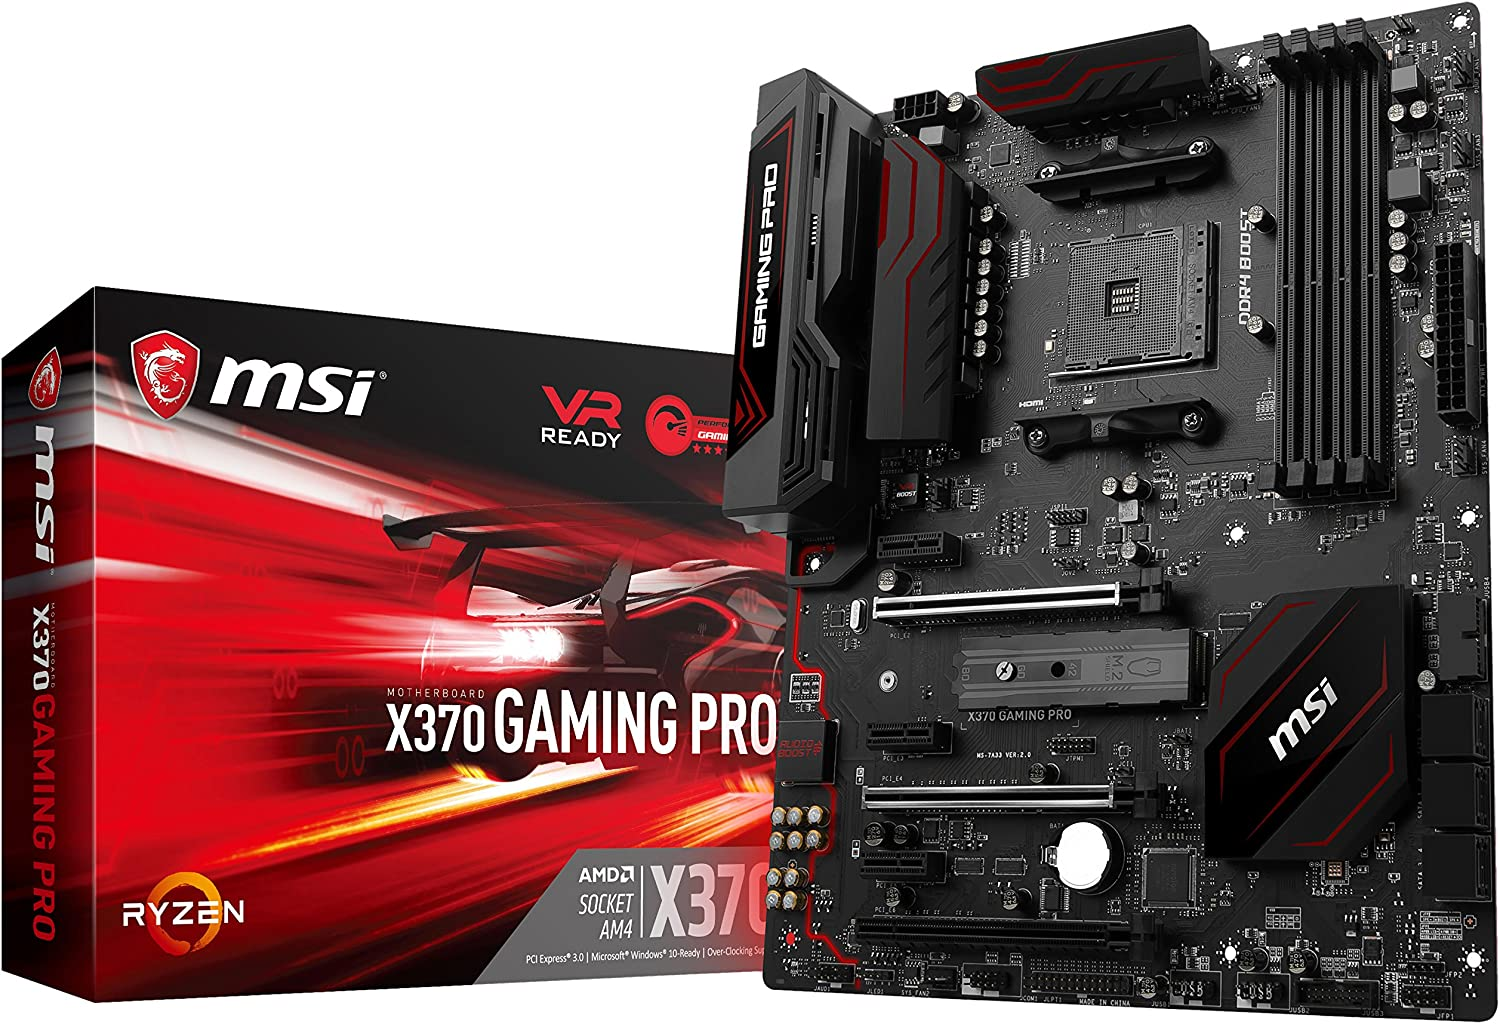 MSI Gaming AMD Ryzen X370 DDR4 VR Ready HDMI USB 3 SLI CFX ATX Motherboard (X370 GAMING PRO)